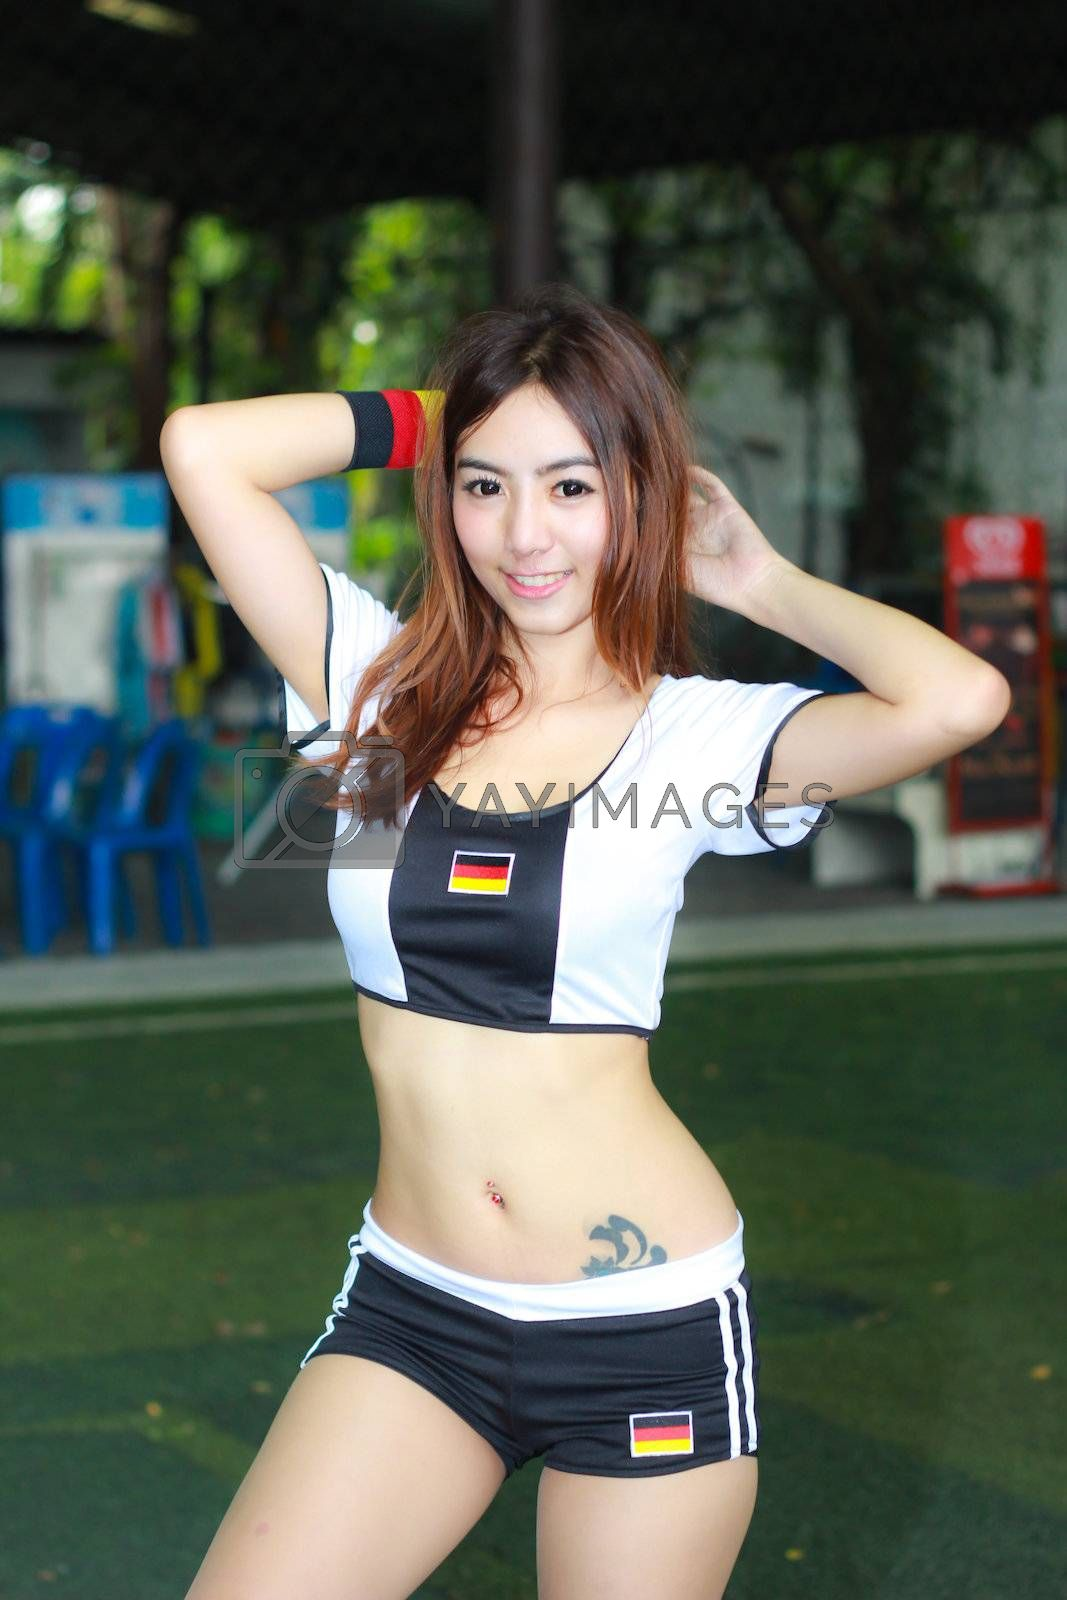 BANGKOK, THAILAND - JUNE 29, 2014: Unidentified model with Germany  costume pose for promote World Cup 2014 in futsal park on June 29, 2014 in Bangkok, Thailand.